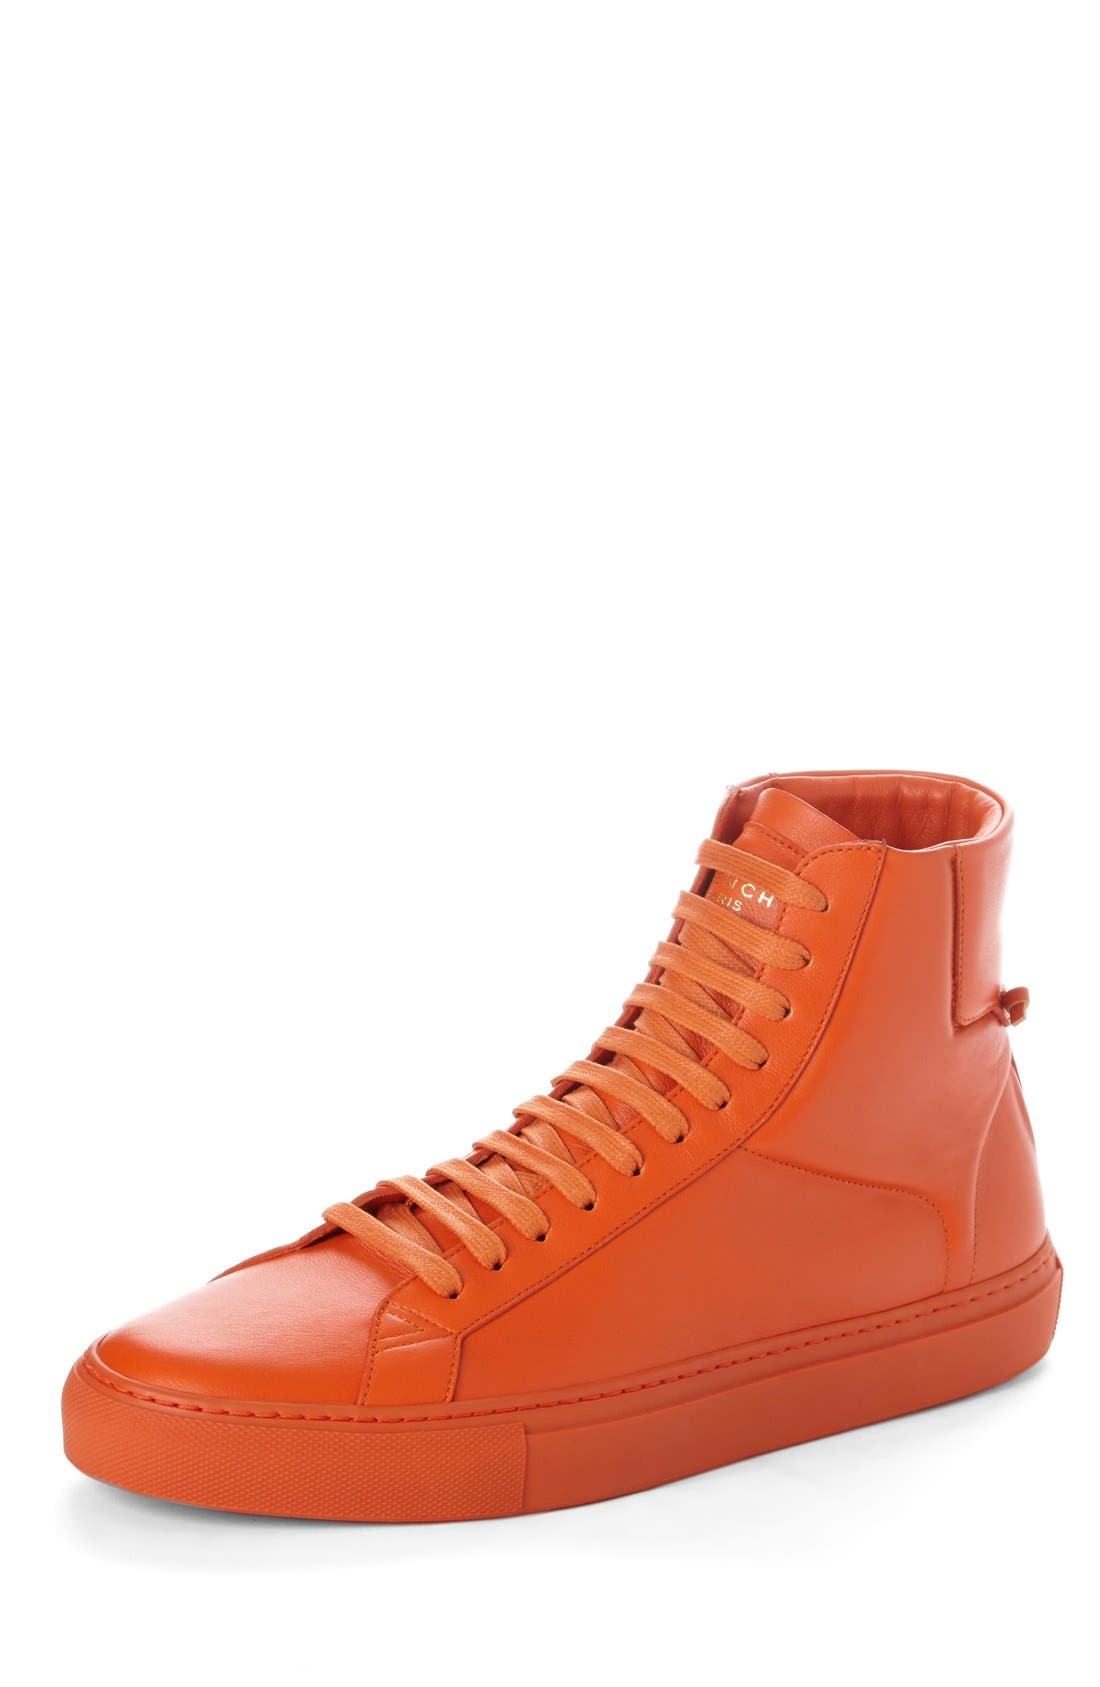 Alternate Image 1 Selected - Givenchy 'Urban Knots' High Top Sneaker (Men)